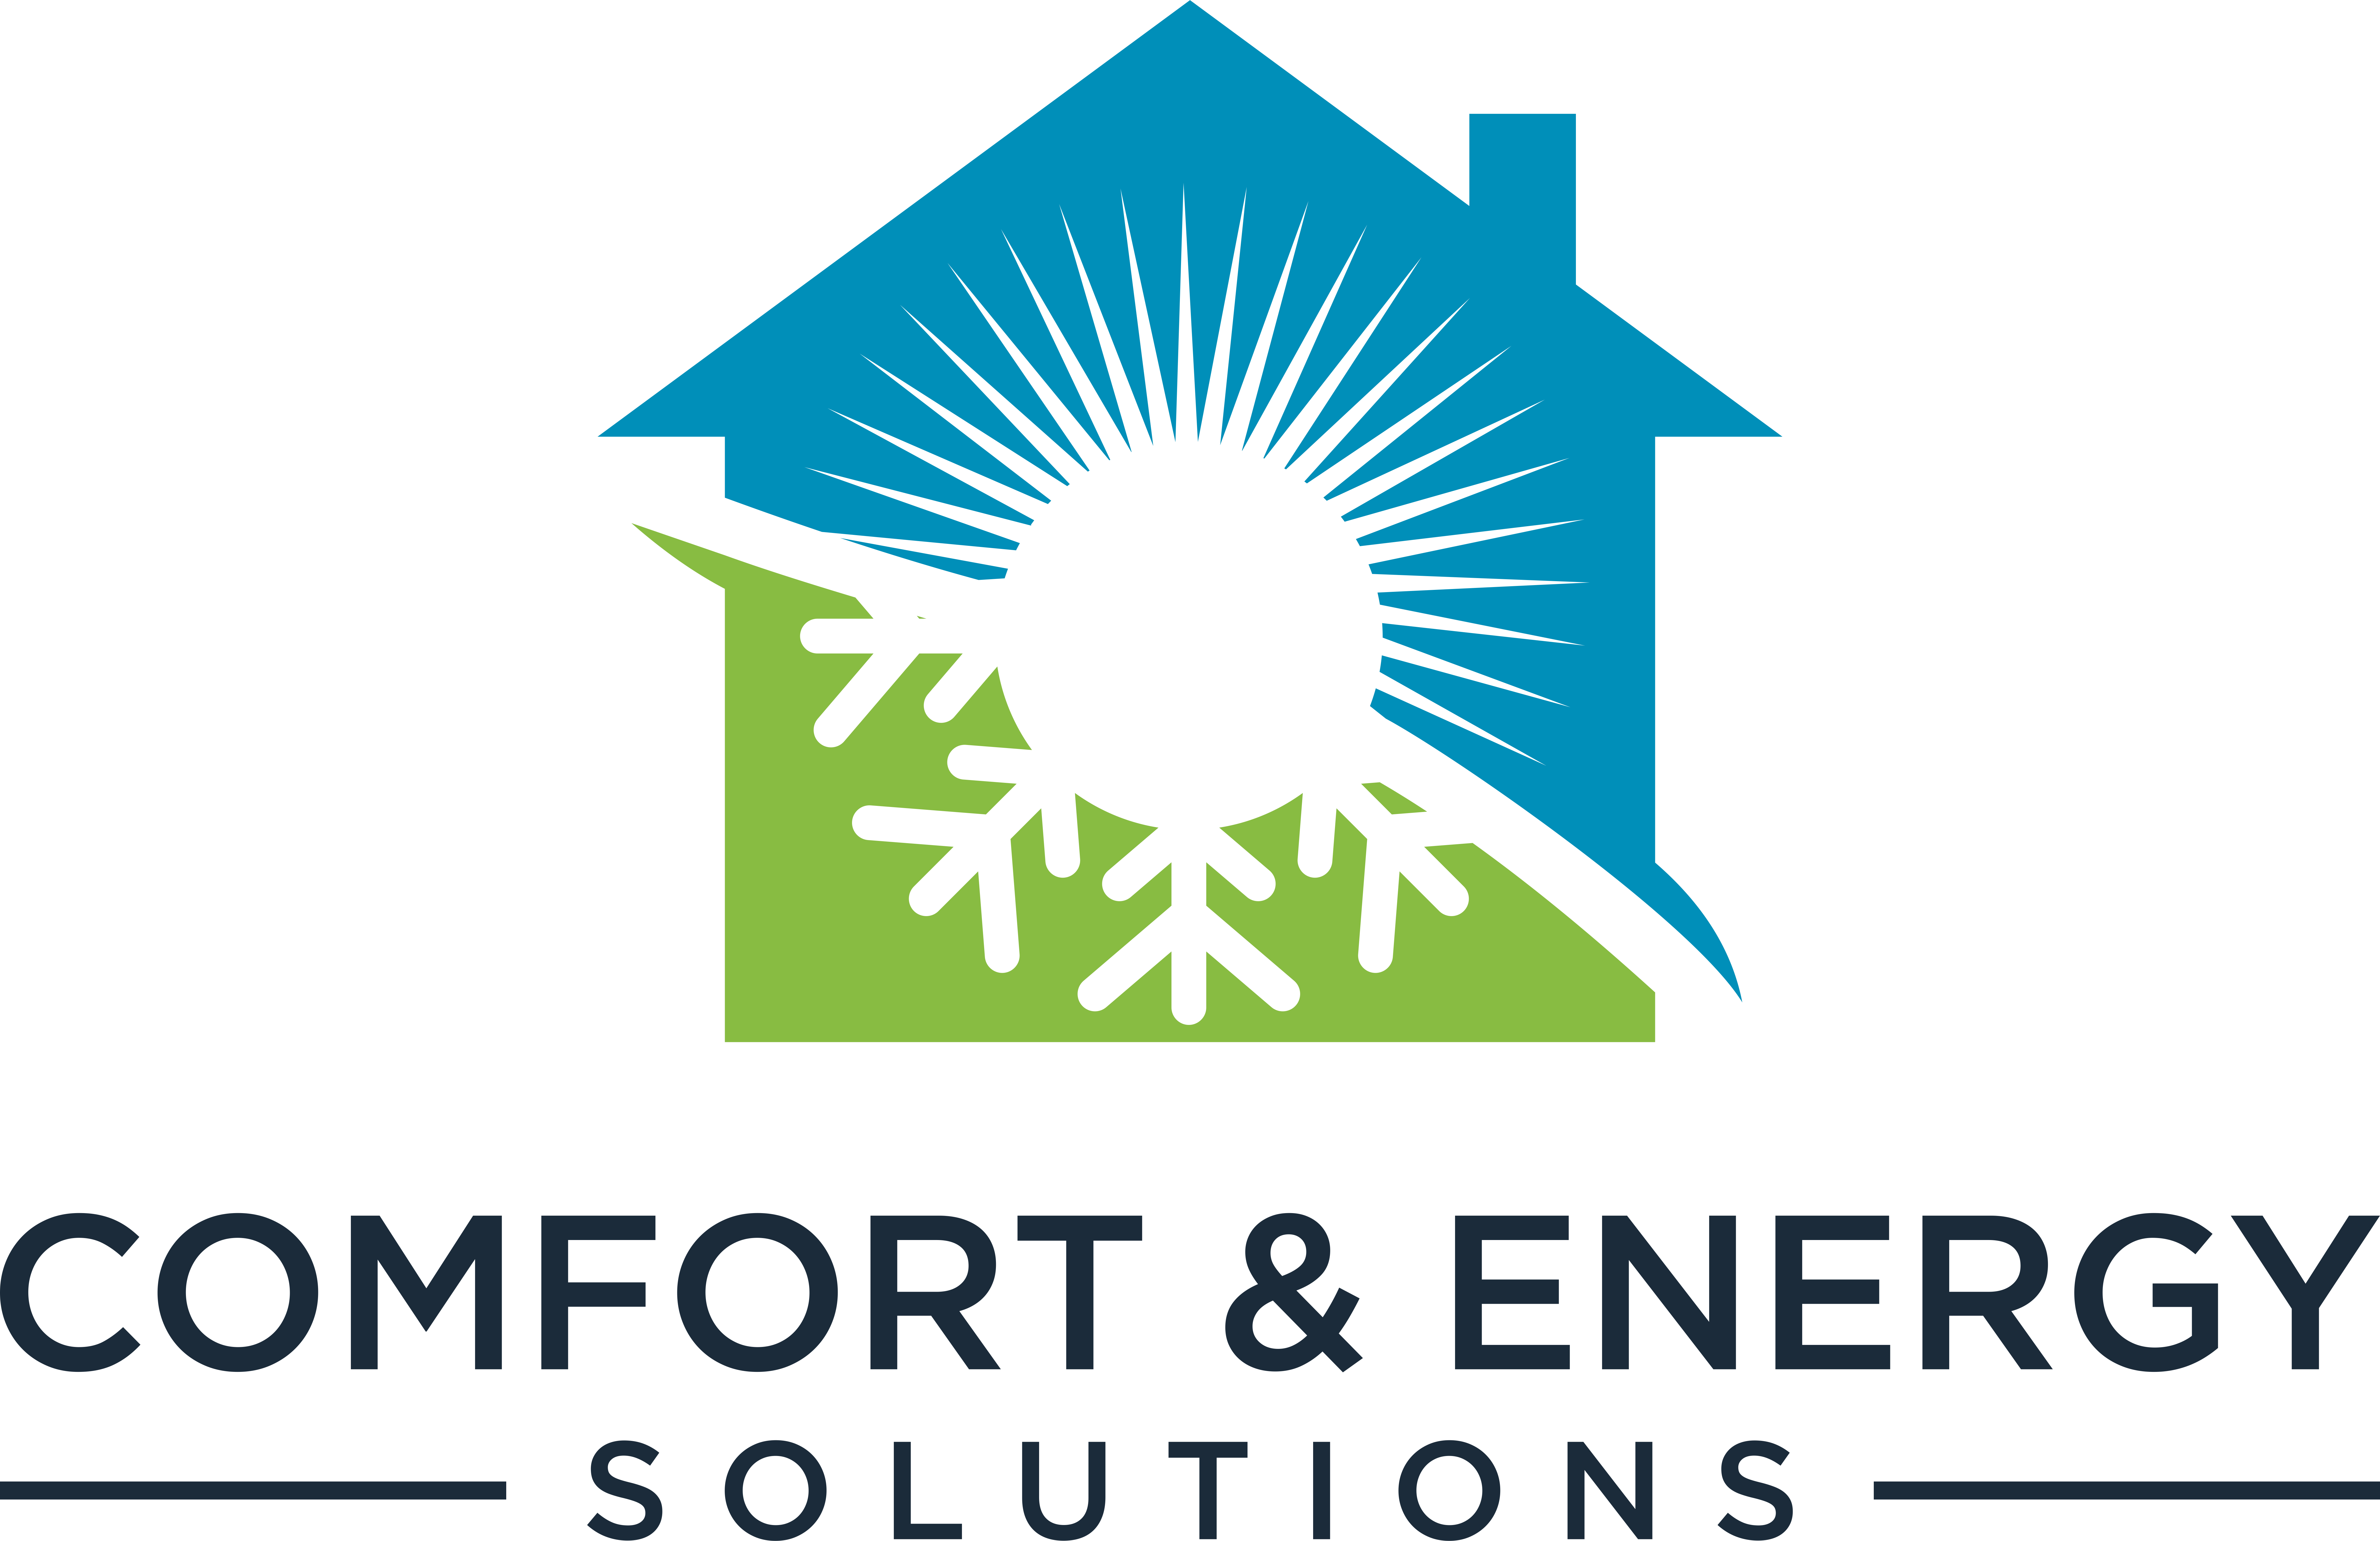 We need a logo for an energy efficiency company that appeals to homeowners.